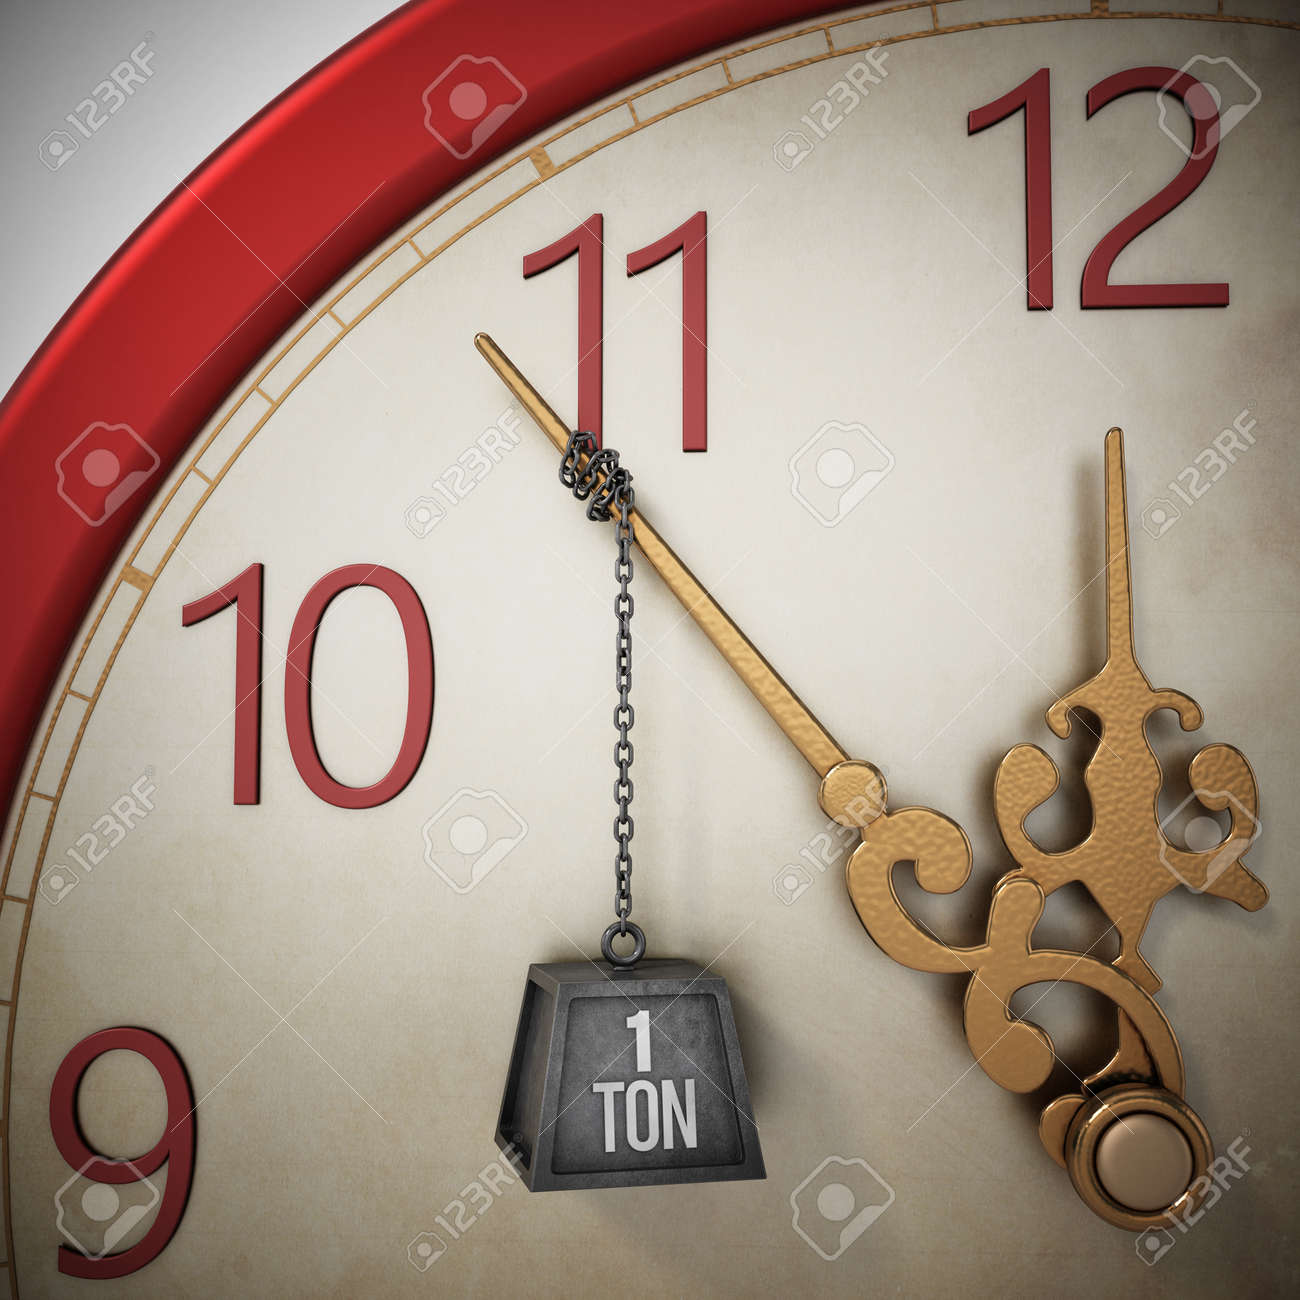 One ton weight chained at the clock hand stopping the time. 3D illustration. - 173109659